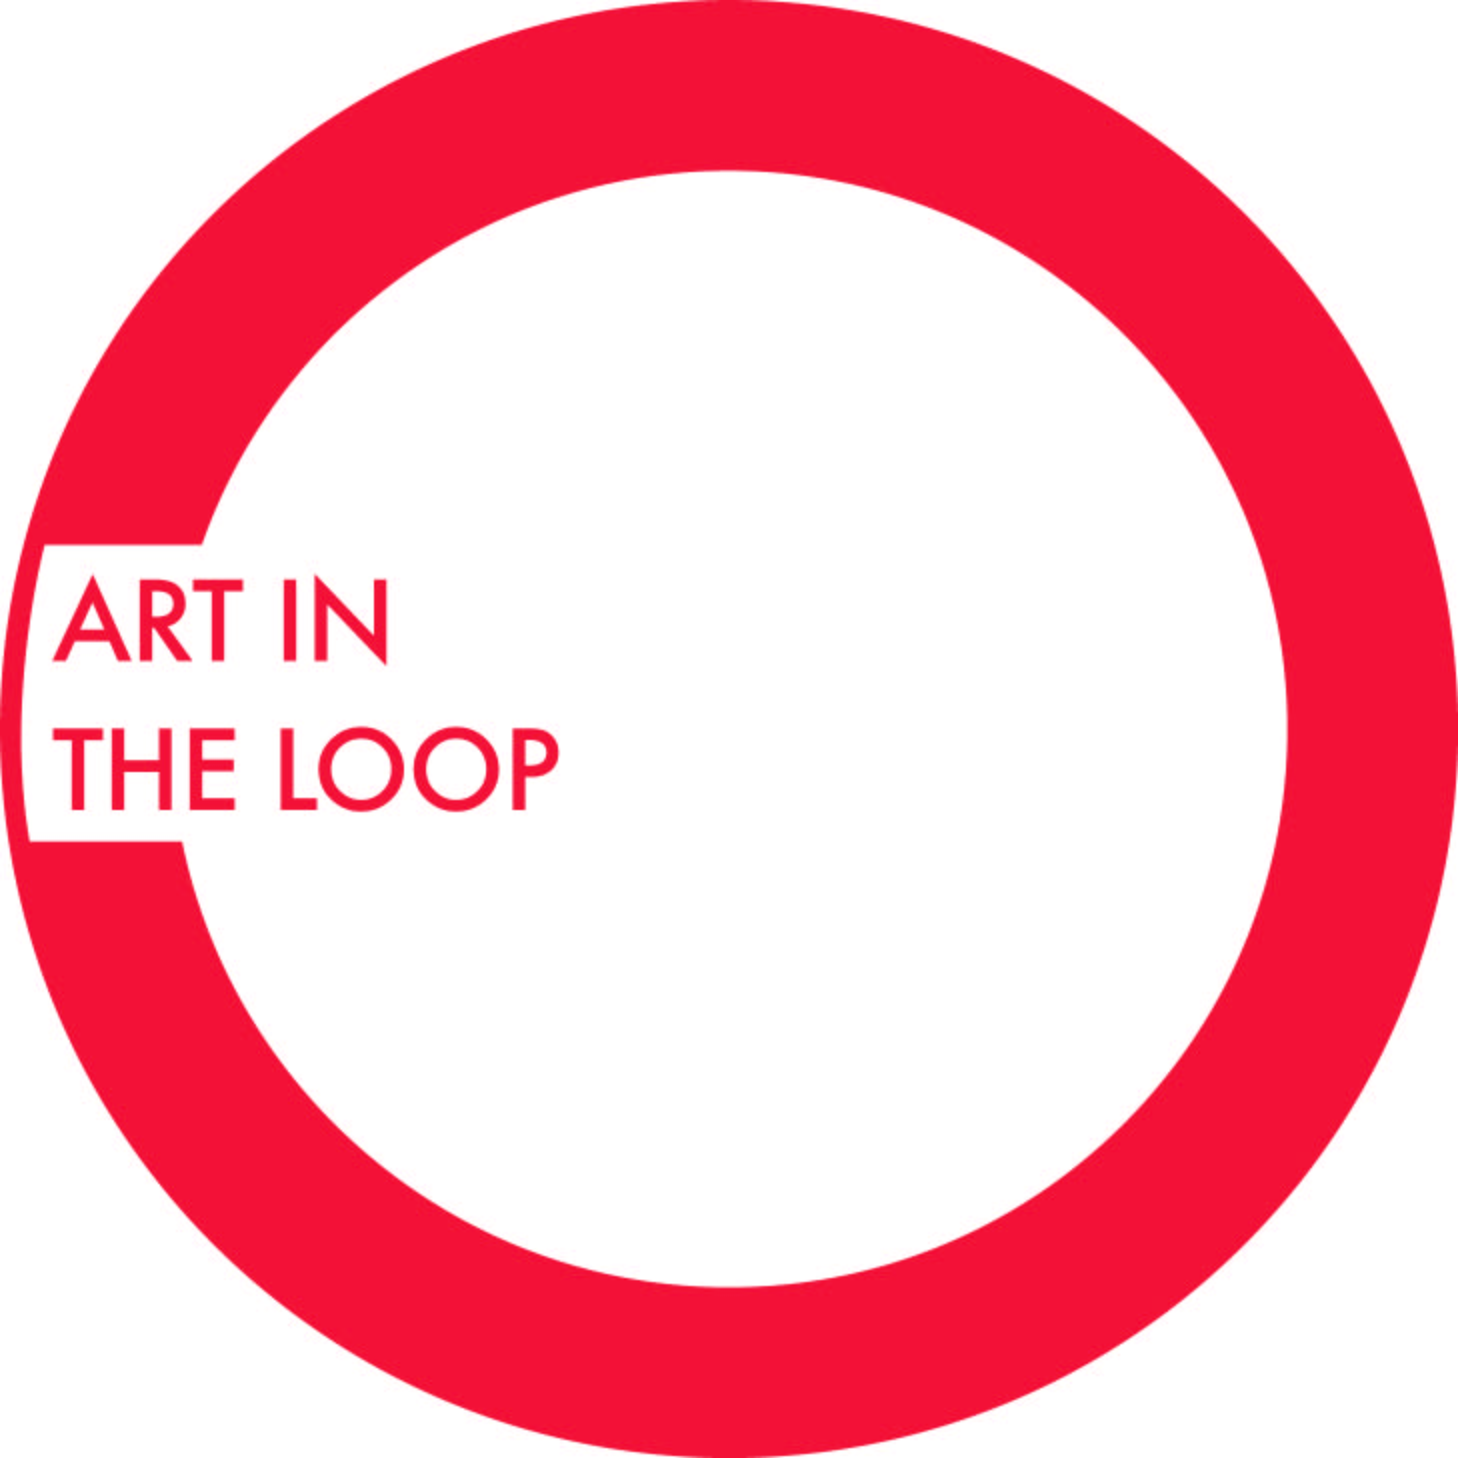 """- """"public squared"""" would like to thank Art in the Loop and all of their donors for the generous support and funding of this project. Without their collaboration, creating this work would not have been possible. For more information on Art in the Loop, visit their website at: https://www.artintheloop.com"""